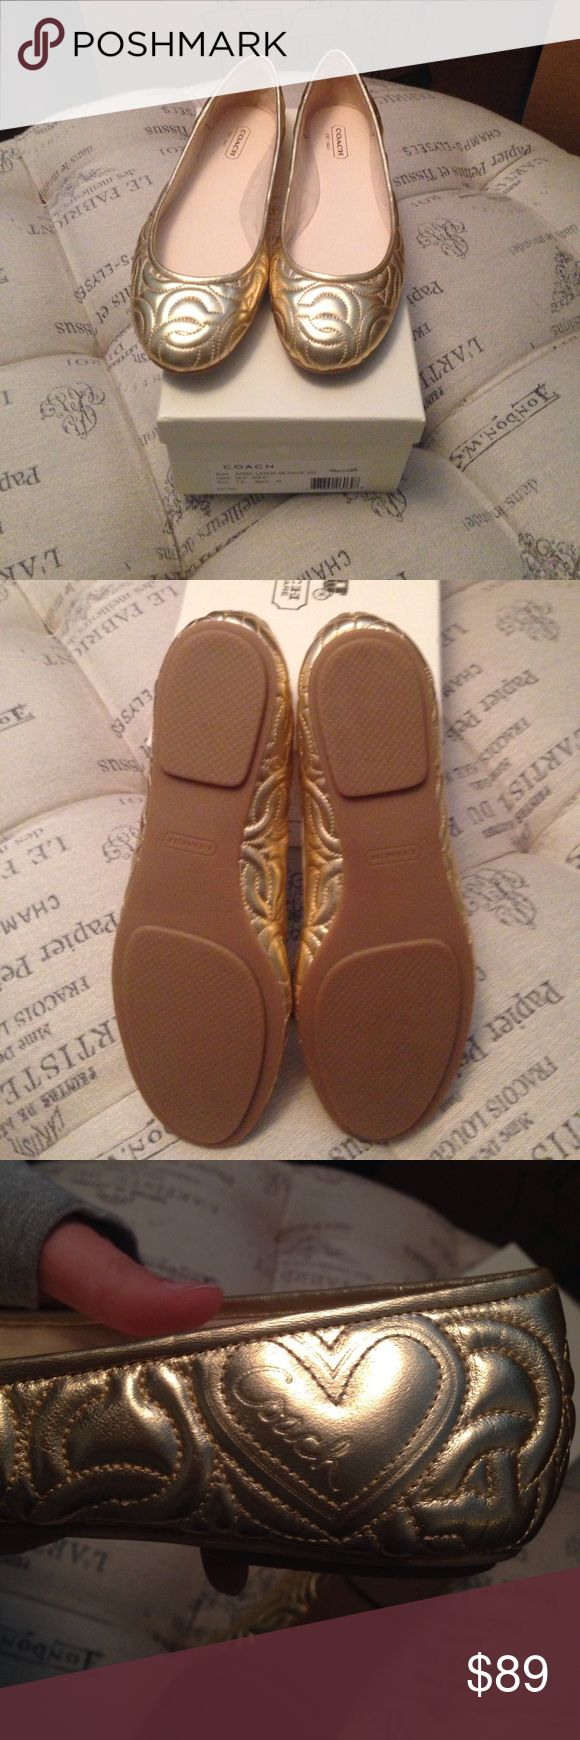 Brand New in box gold Coach flats size 7.5 Brand New in box gold Coach flats size 7.5 Coach Shoes Flats & Loafers